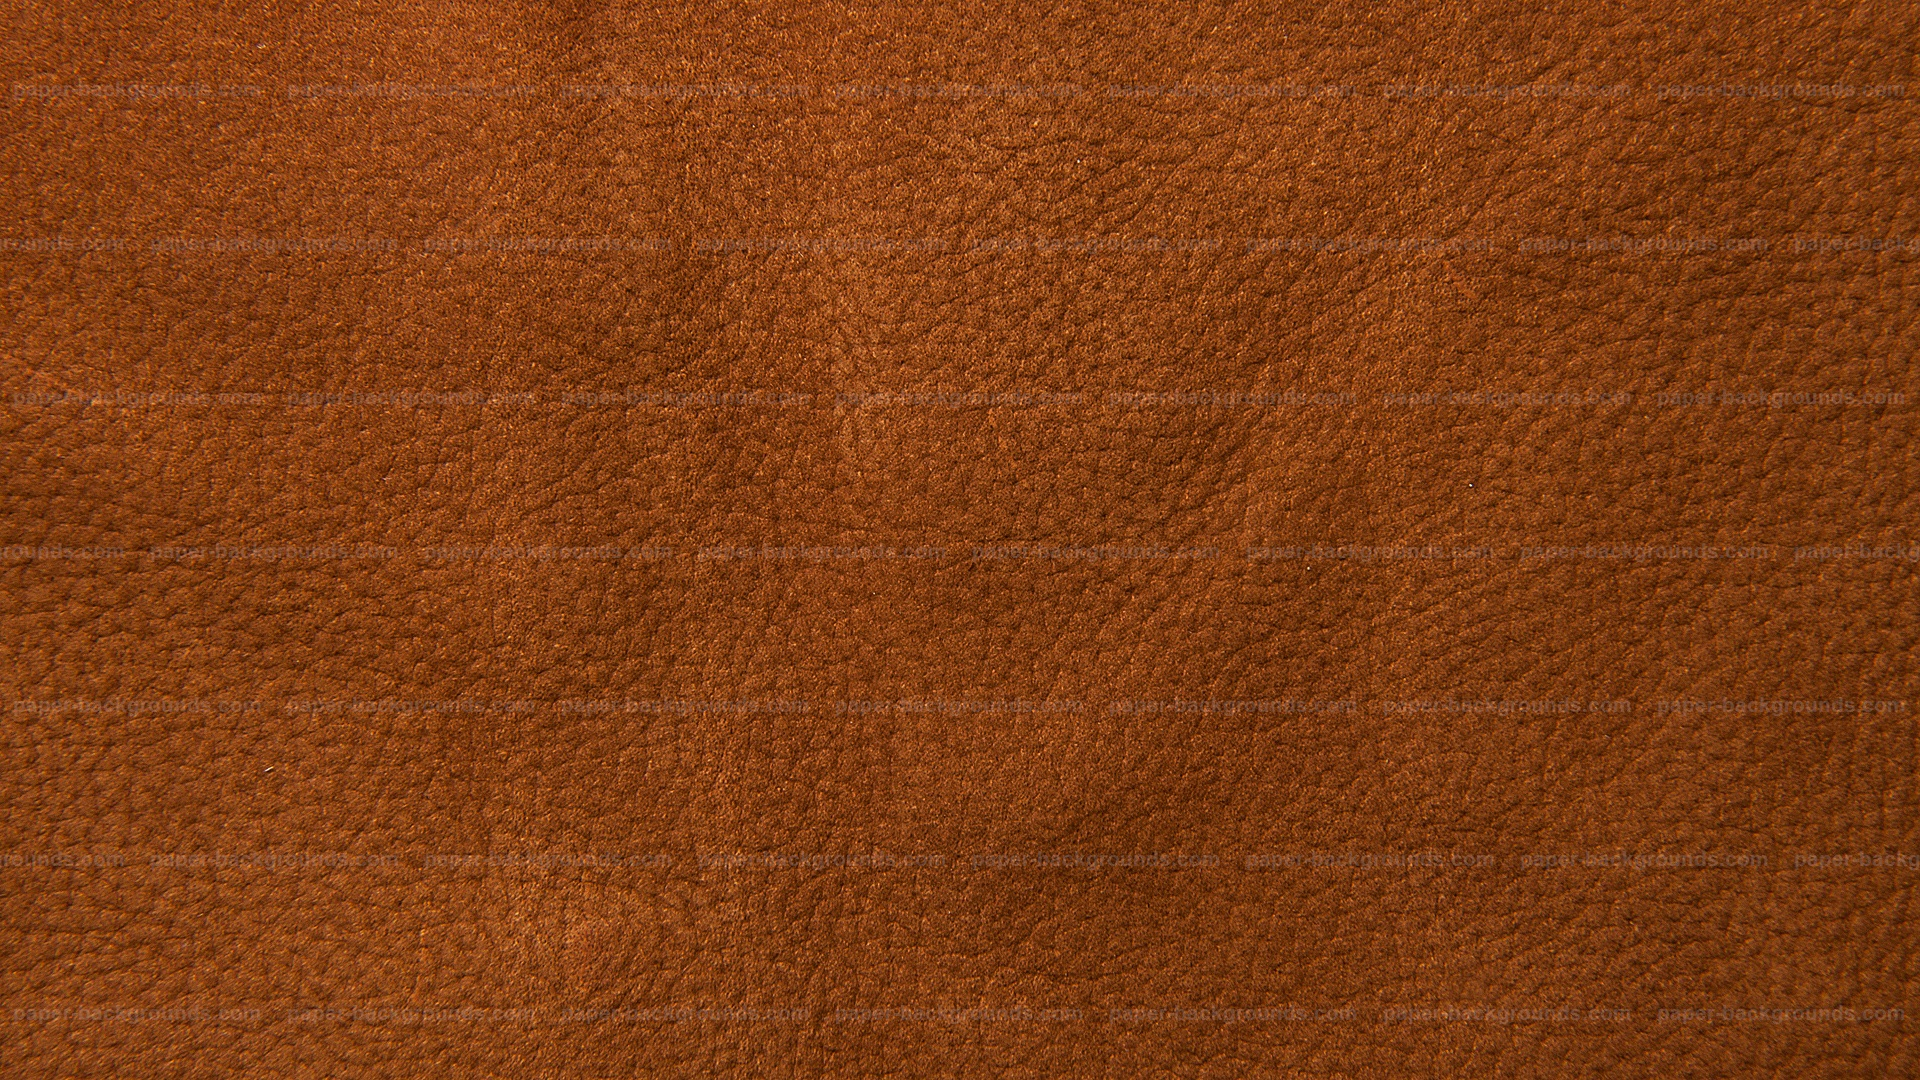 Leather Seamless Wallpaper  Collection 7 Wallpapers